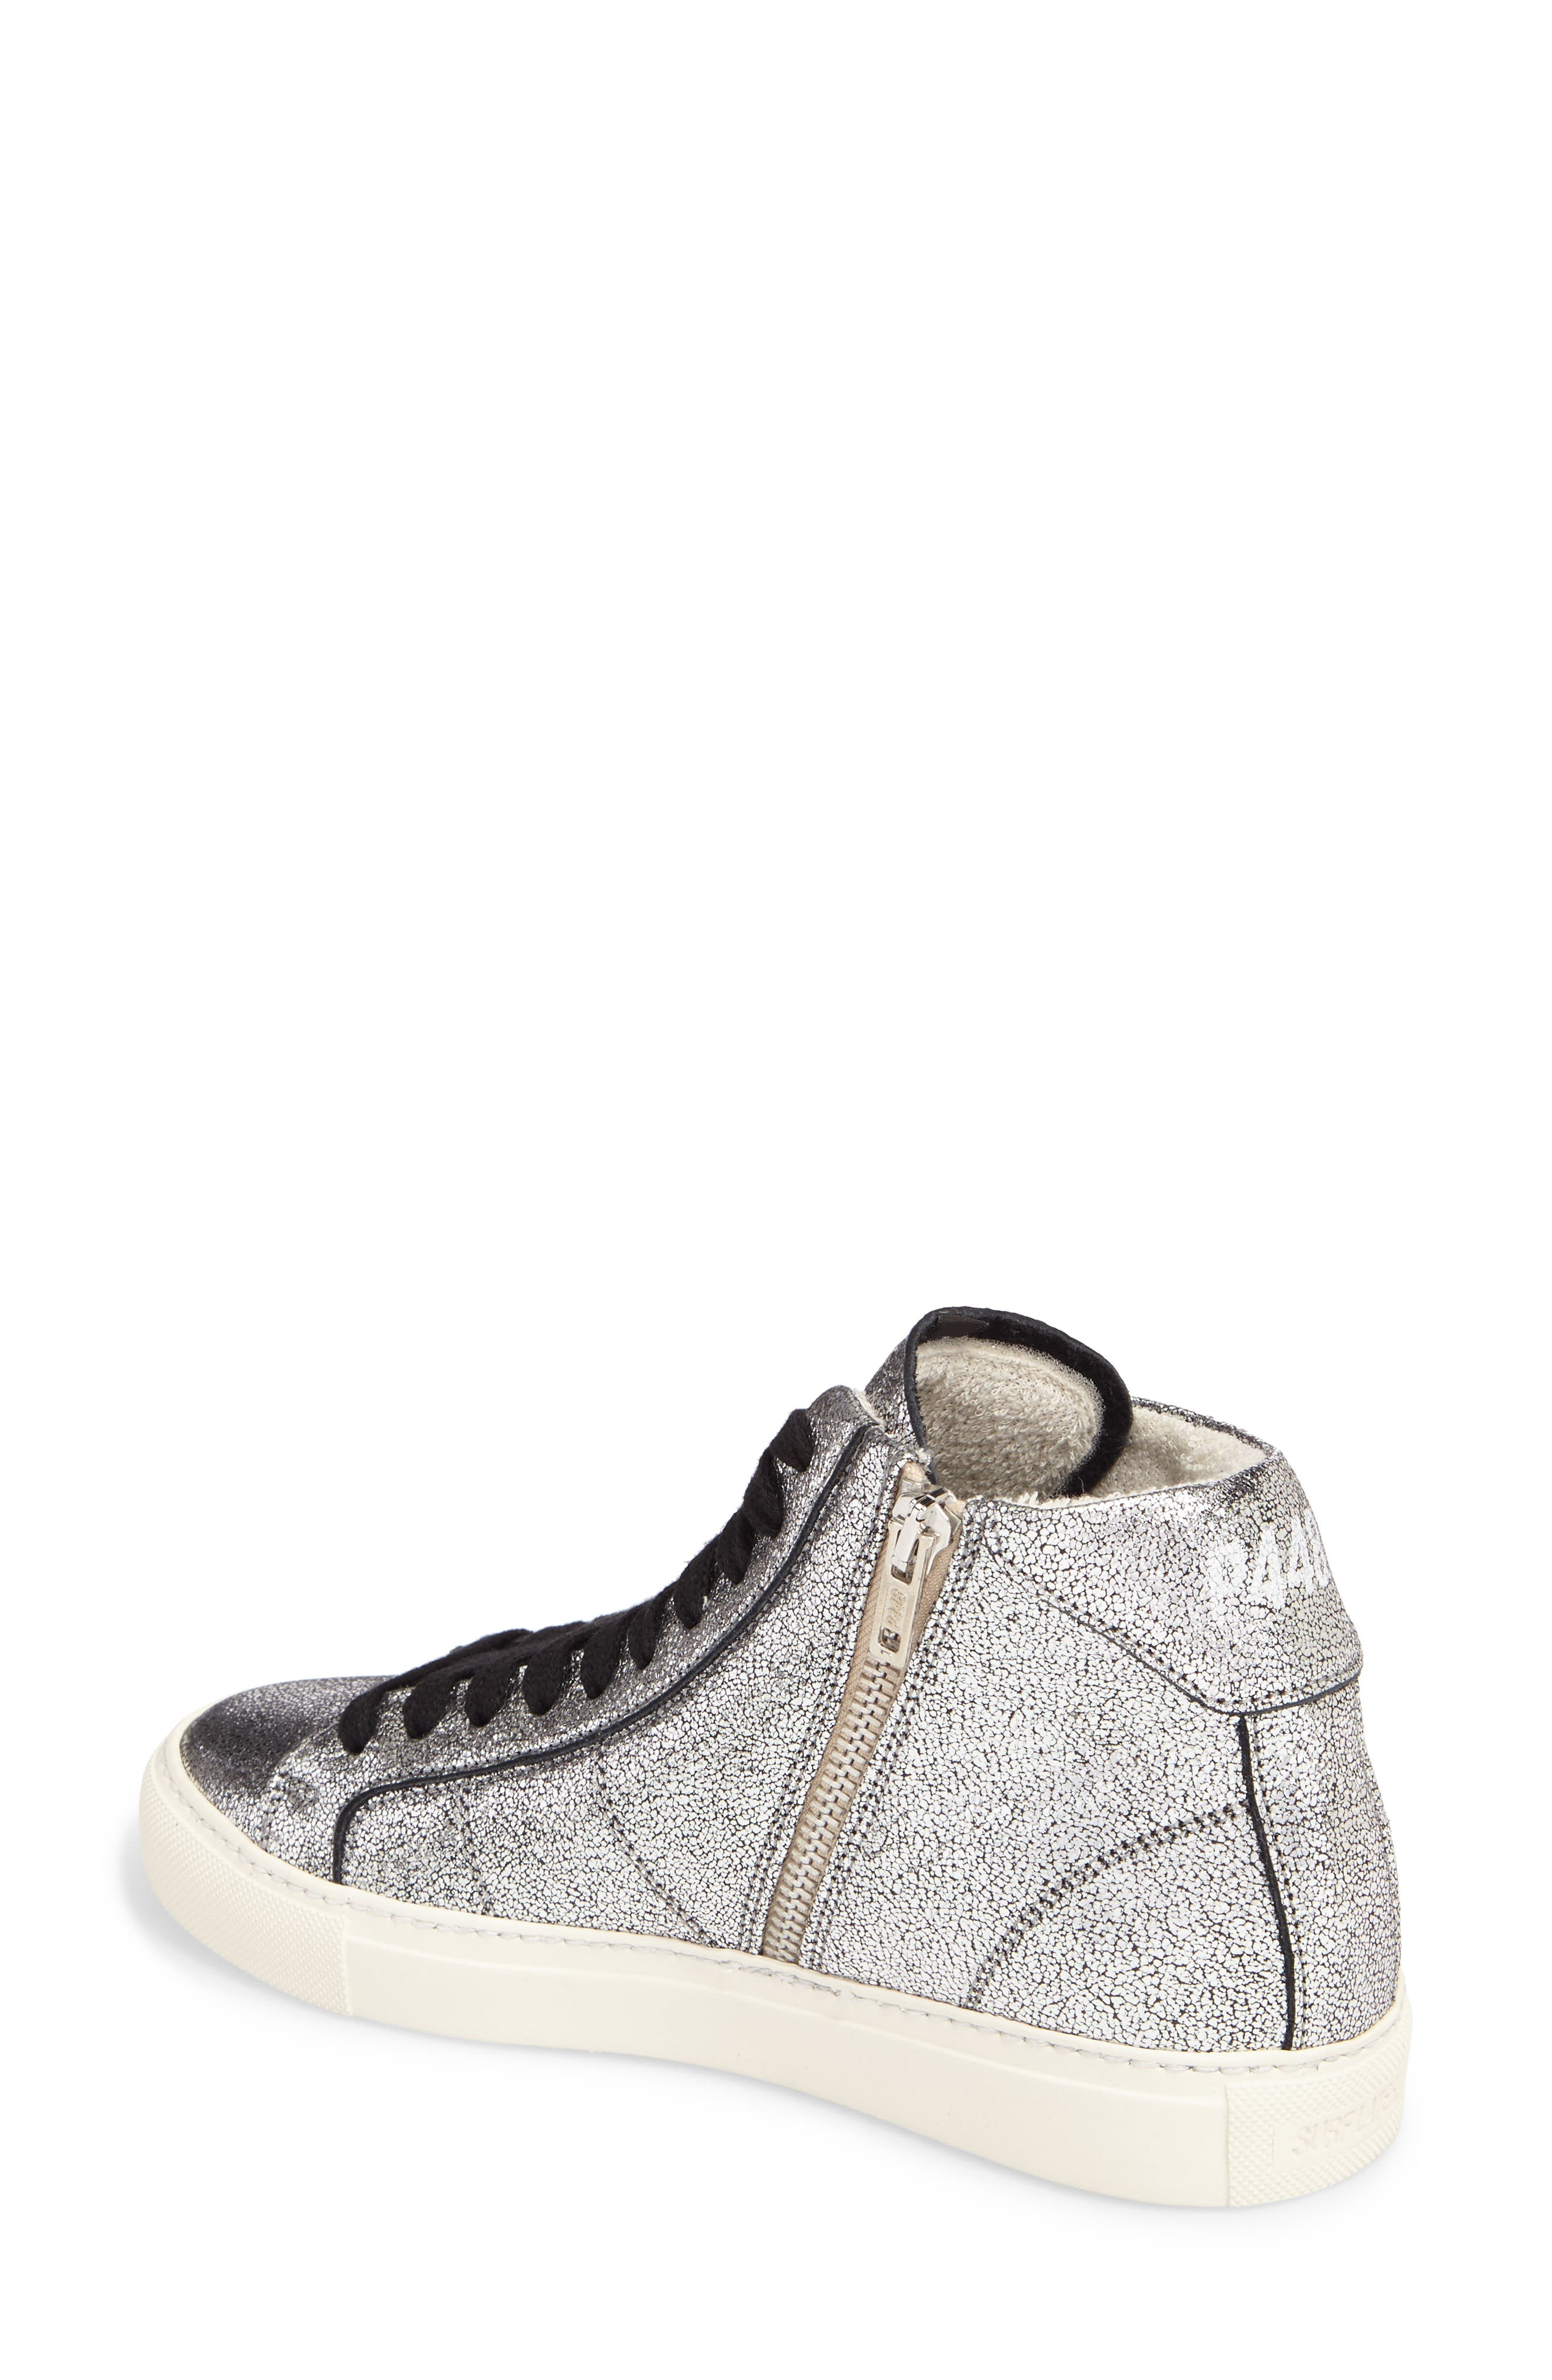 Star 2.0 Sneaker,                             Alternate thumbnail 2, color,                             SILVER LEATHER